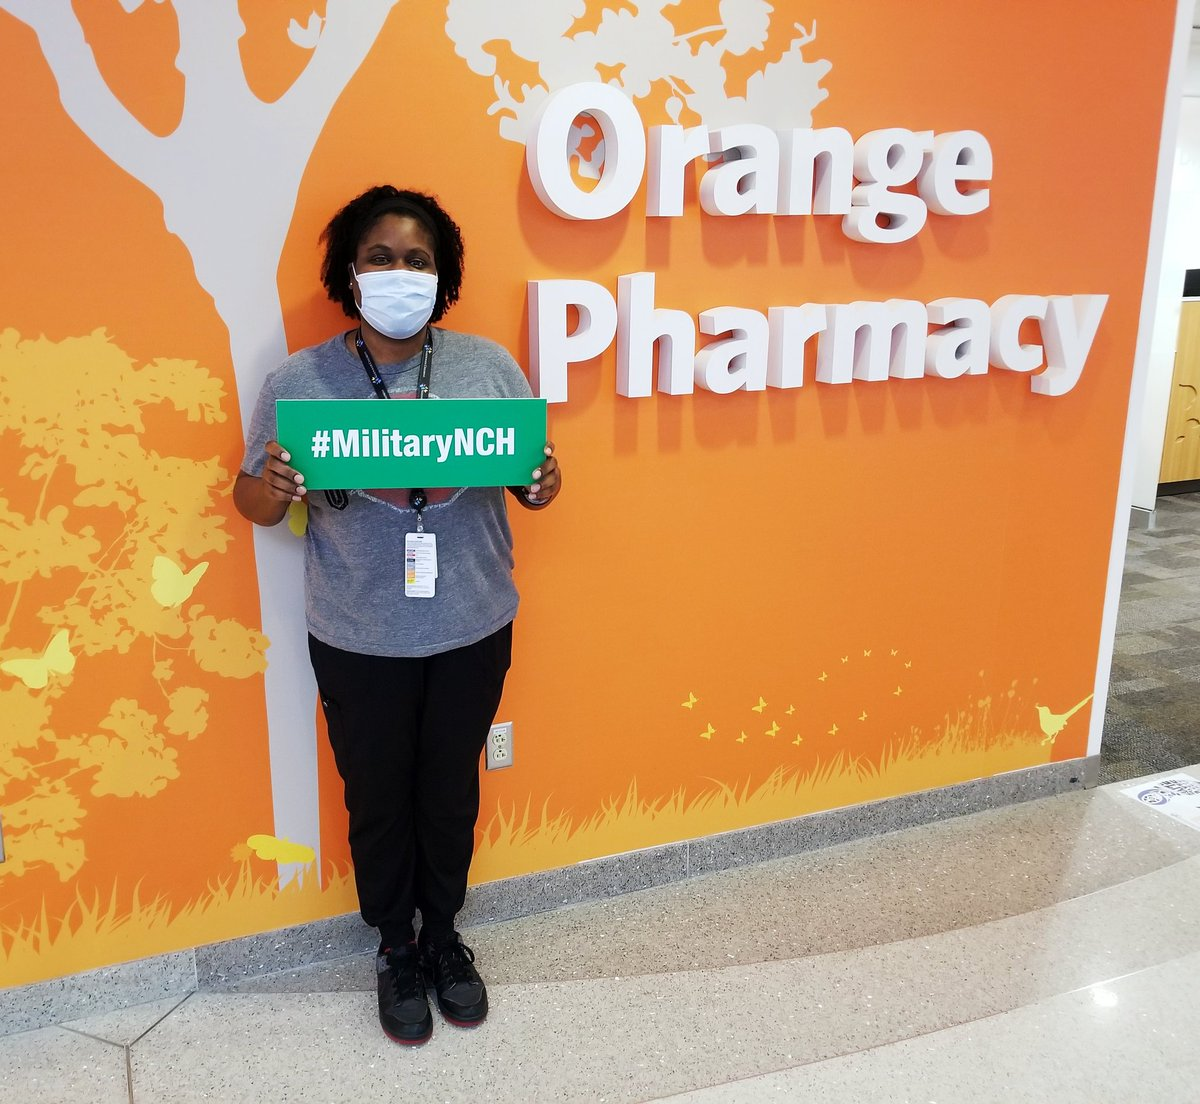 Meet Brittanie, #pharmacytech extraordinaire and @usairforce veteran. Her military training taught her 'capacity', which means she can tackle whatever @NCHCareers tosses her way! Thanks for all you do! #pharmacyweek #MilitaryMonday